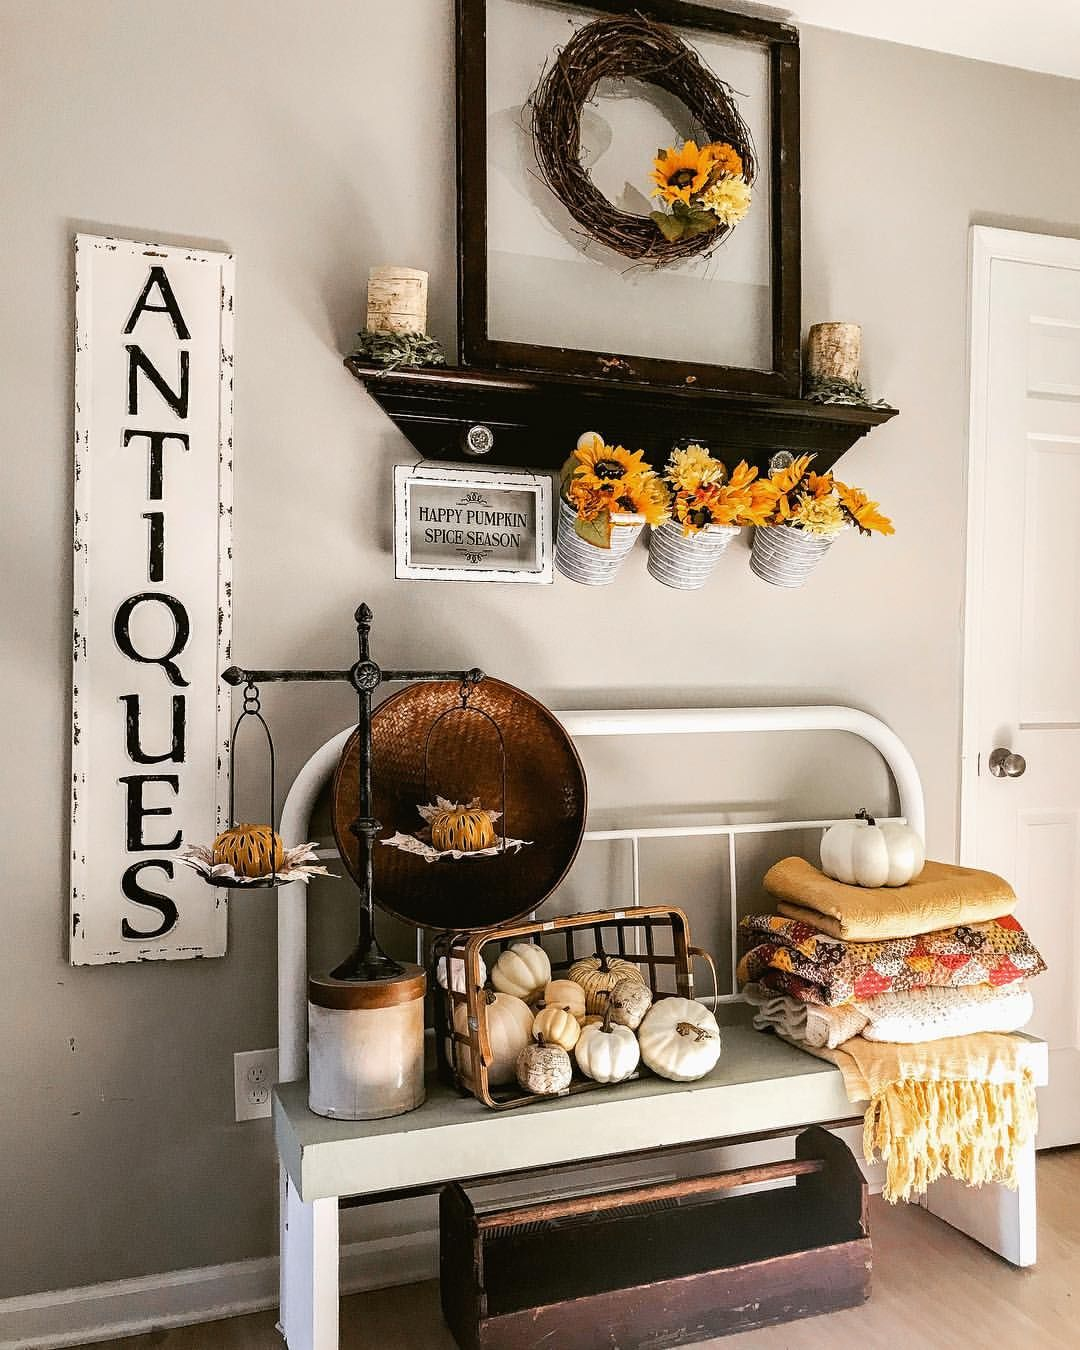 Farmhousehome Decorating Ideas: I Had To Add Some Happy Traditional Colors To Our Entrance